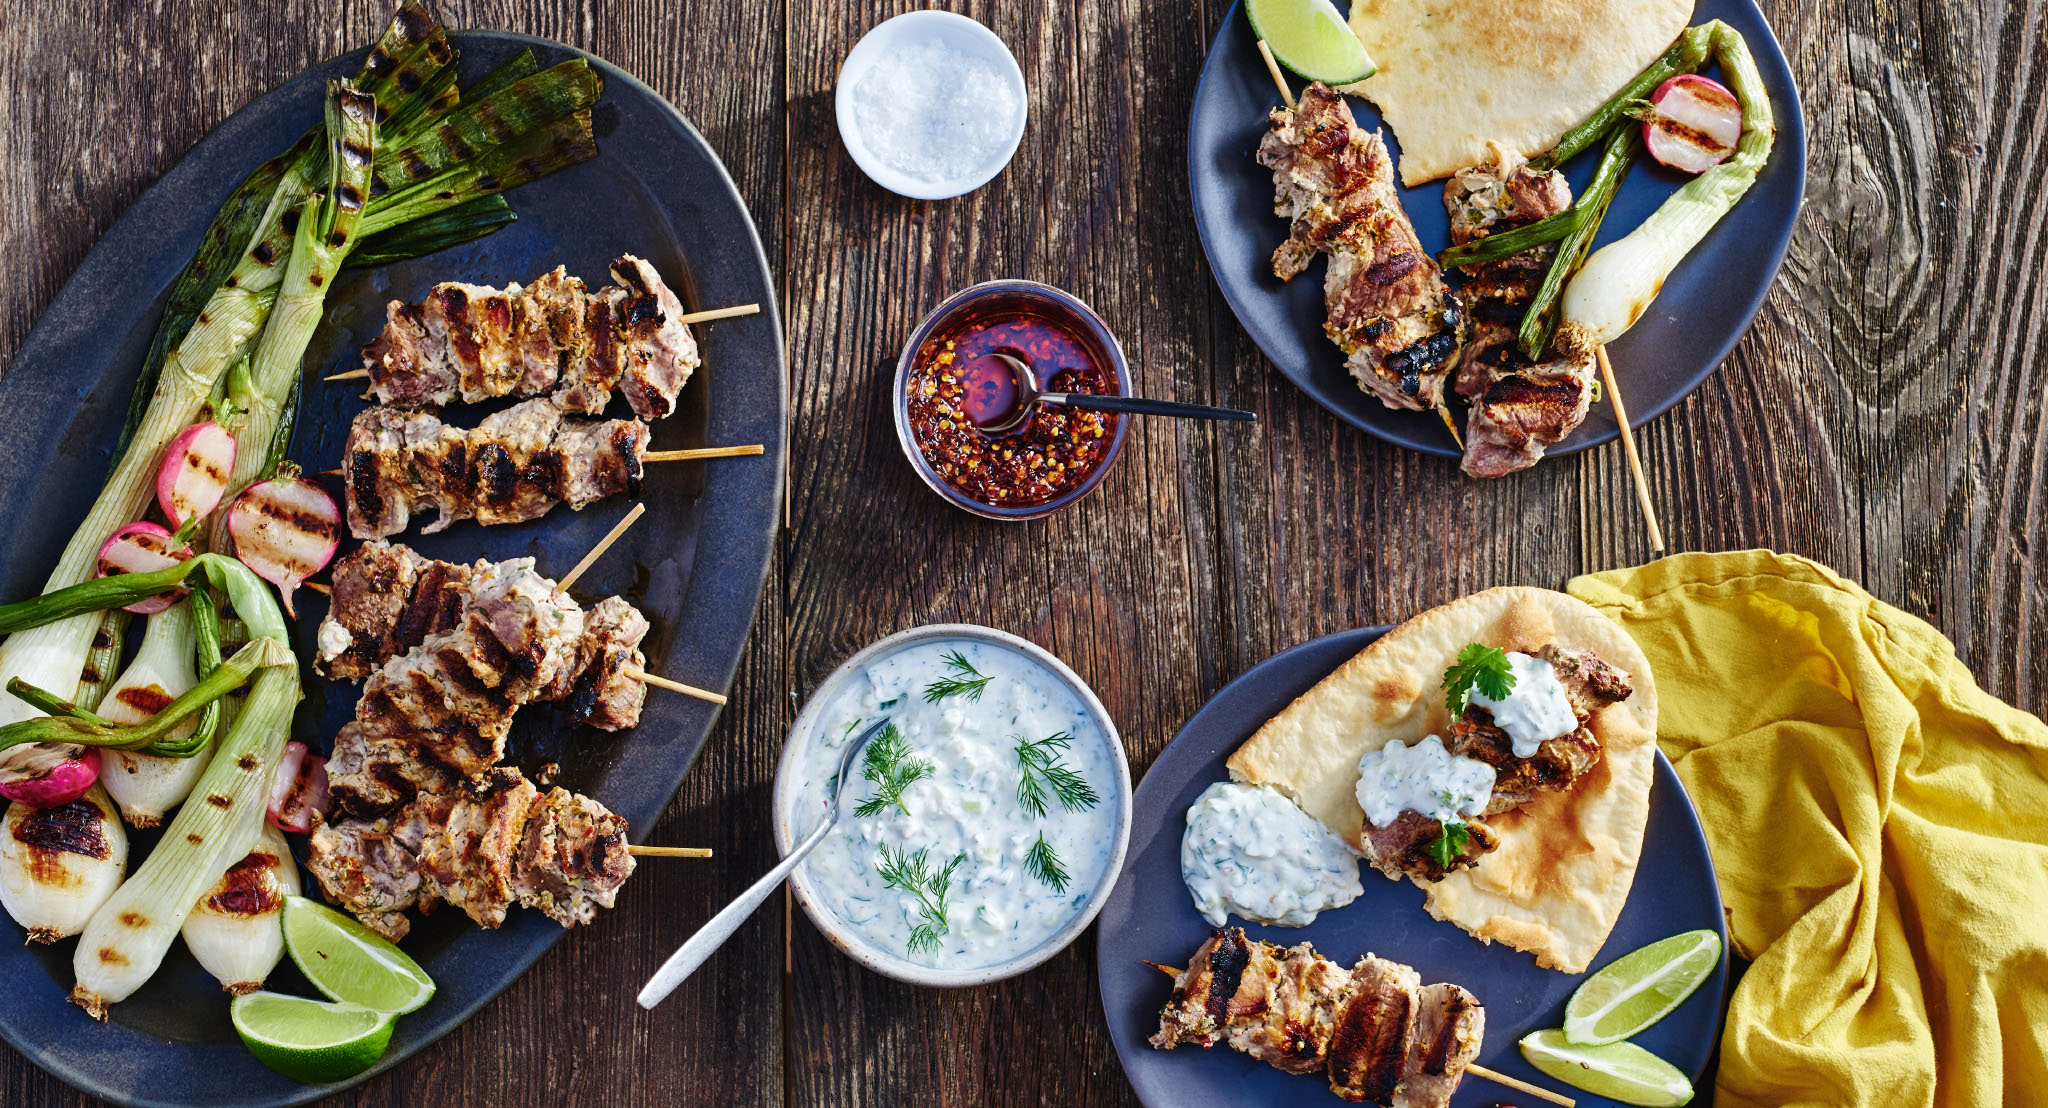 Spiced-Herbed Yogurt Lamb Kabobs with Cucumber-Dill Sauce